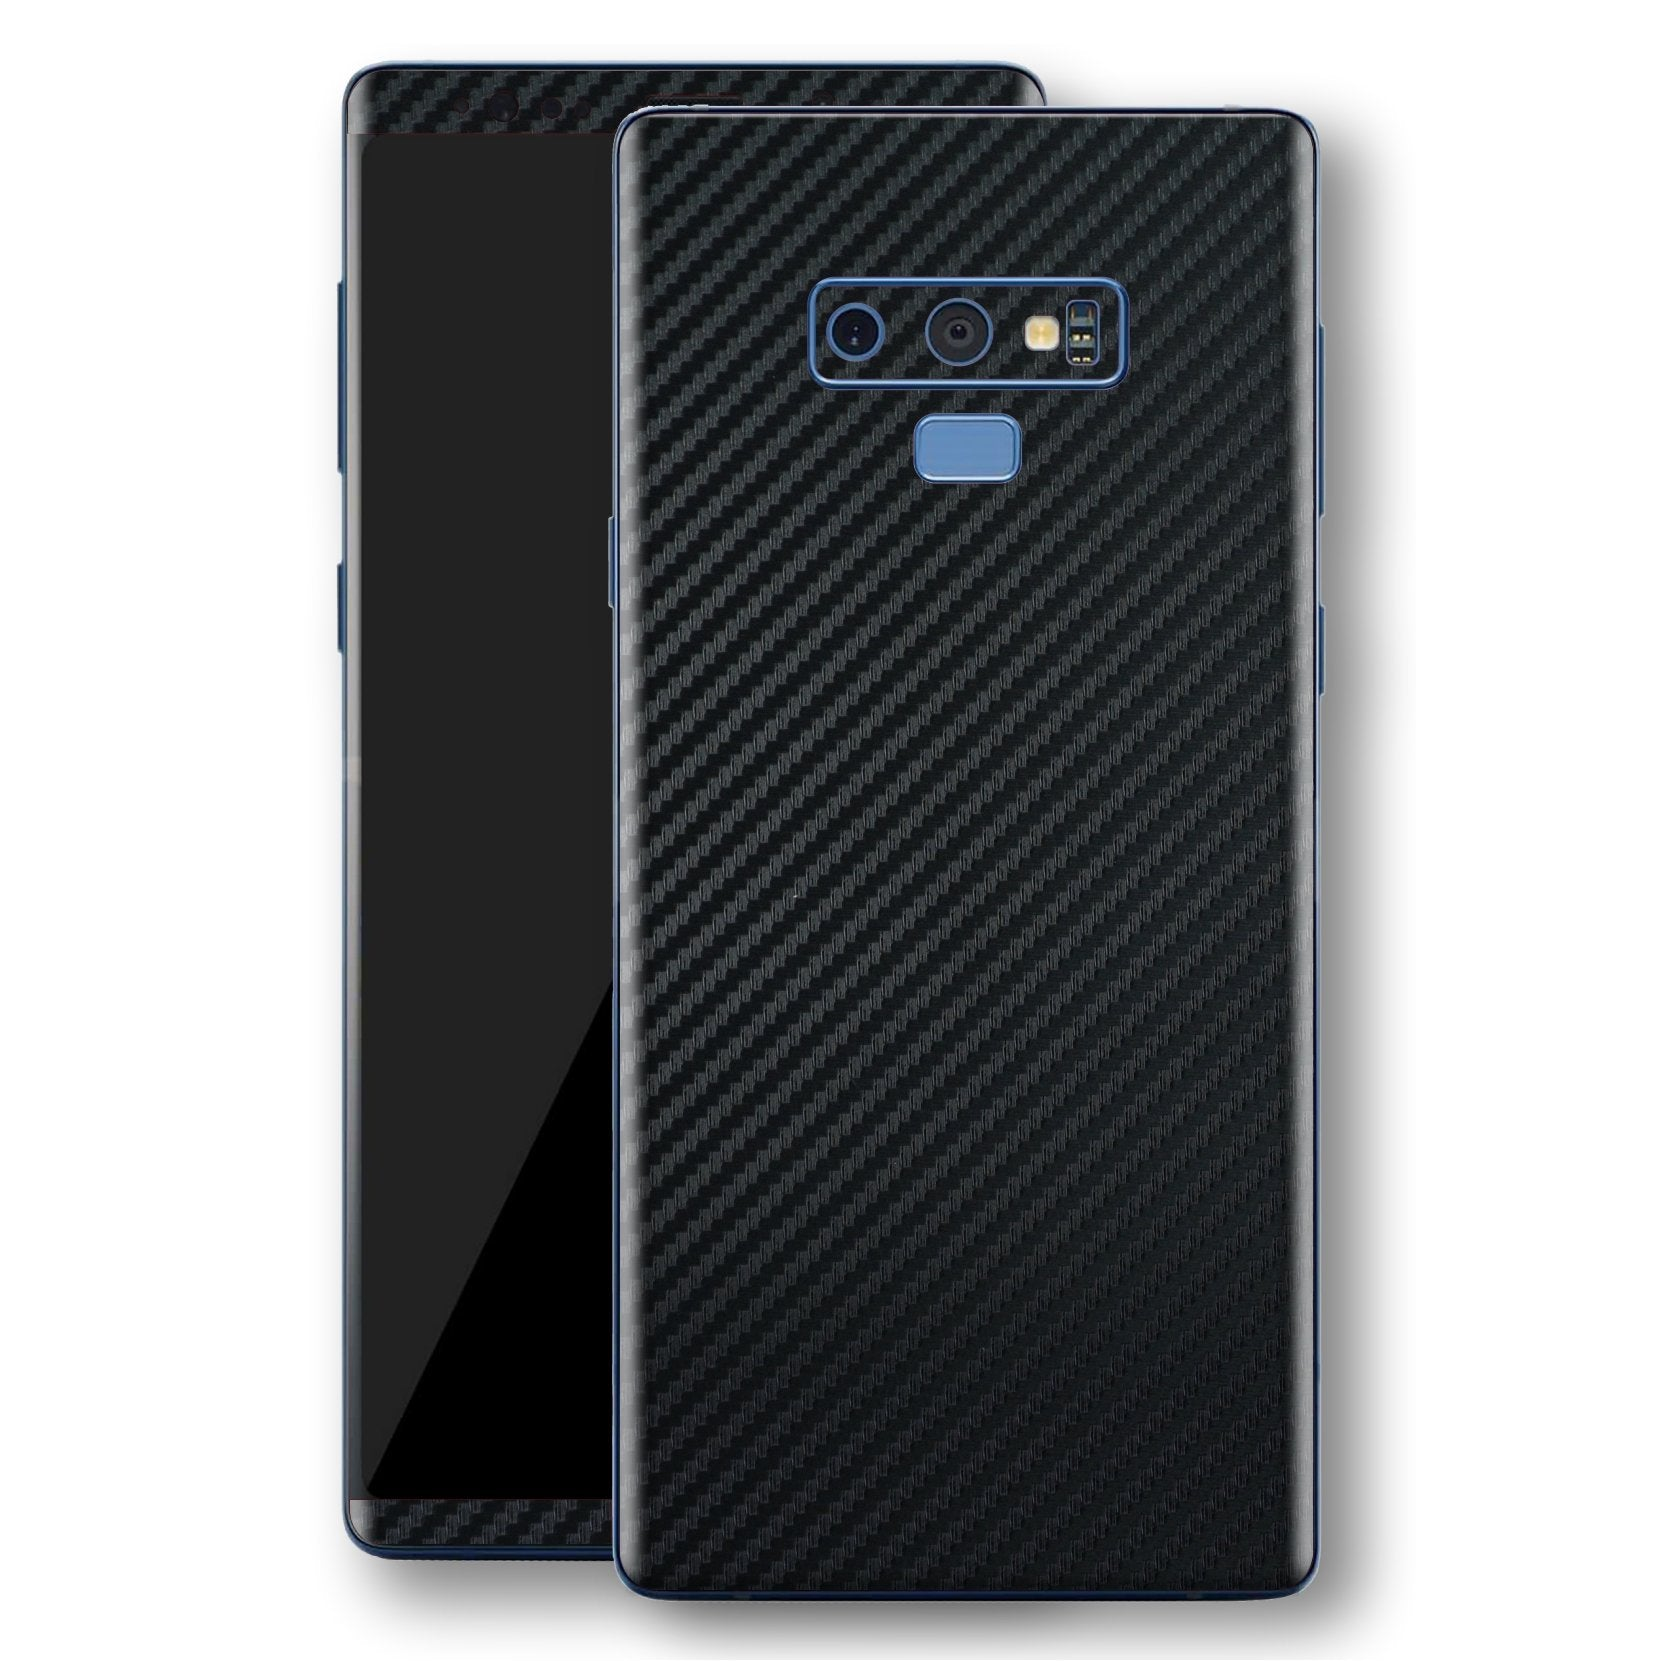 Samsung Galaxy NOTE 9 3D Textured Black Carbon Fibre Fiber Skin, Decal, Wrap, Protector, Cover by EasySkinz | EasySkinz.com